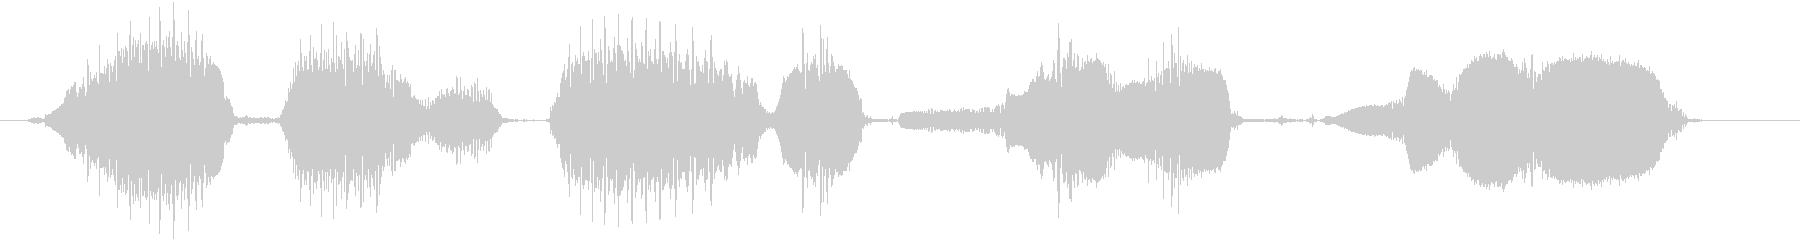 Thank you for subscribing to the channel's unreproduced waveform